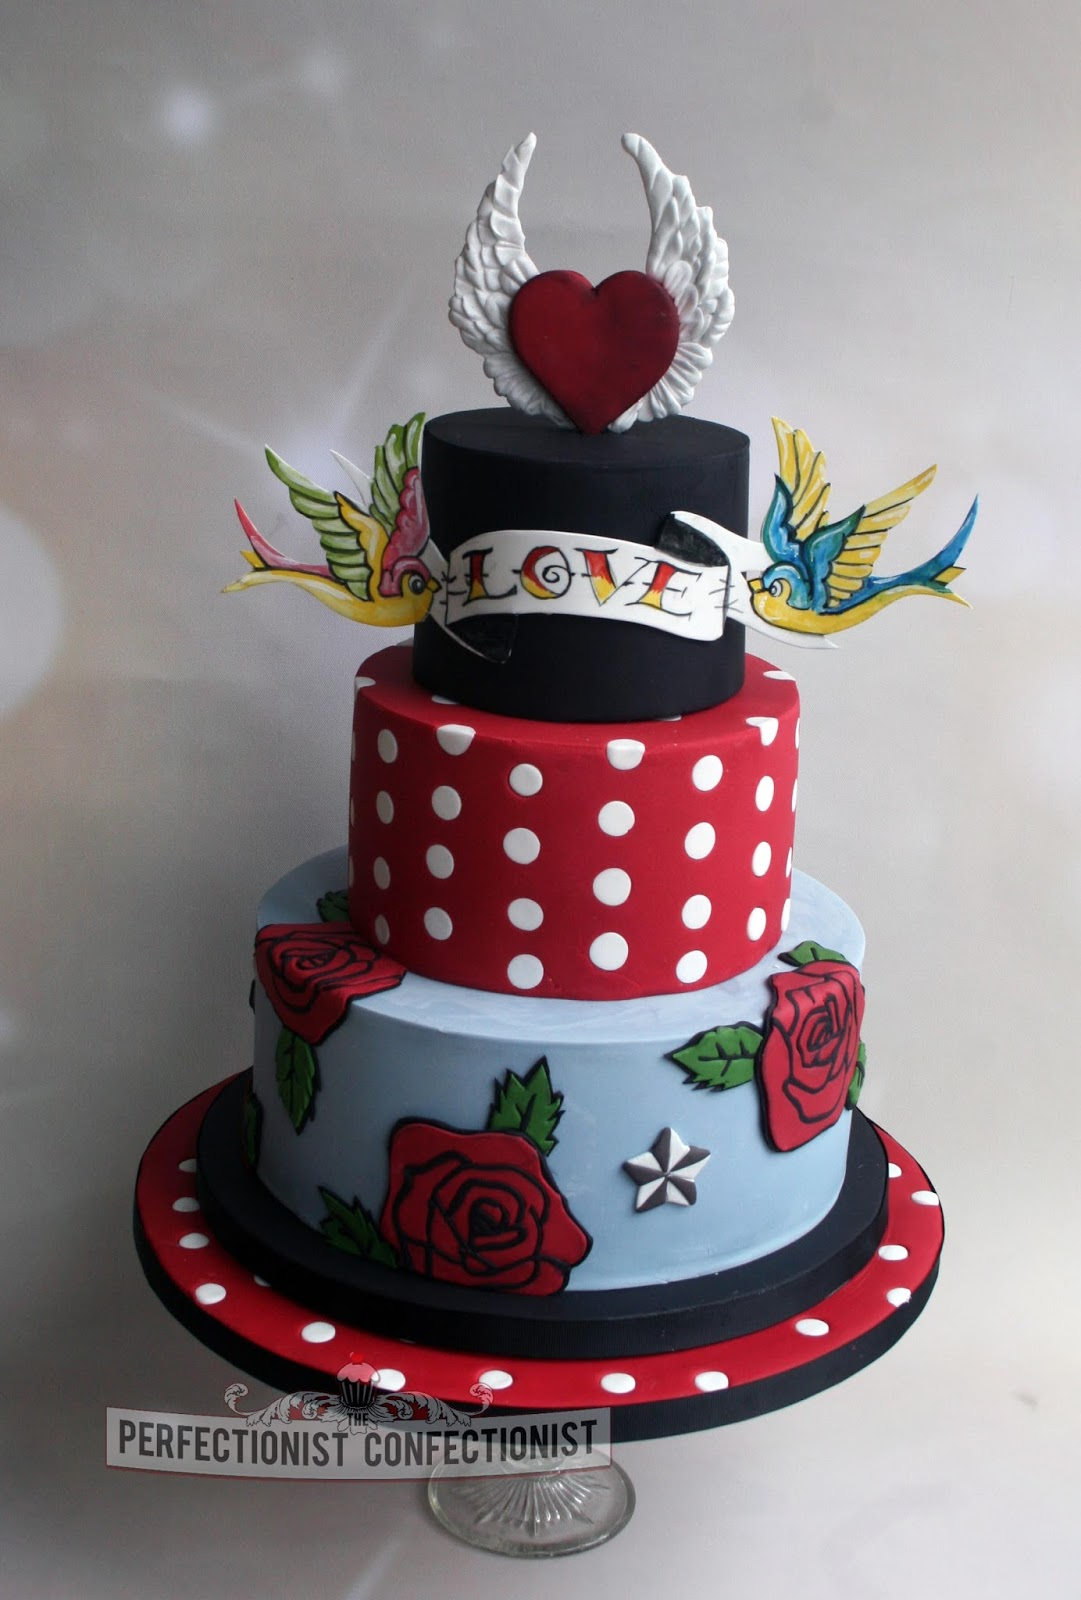 rockabilly wedding cake the perfectionist confectionist rockabilly wedding cake 19241